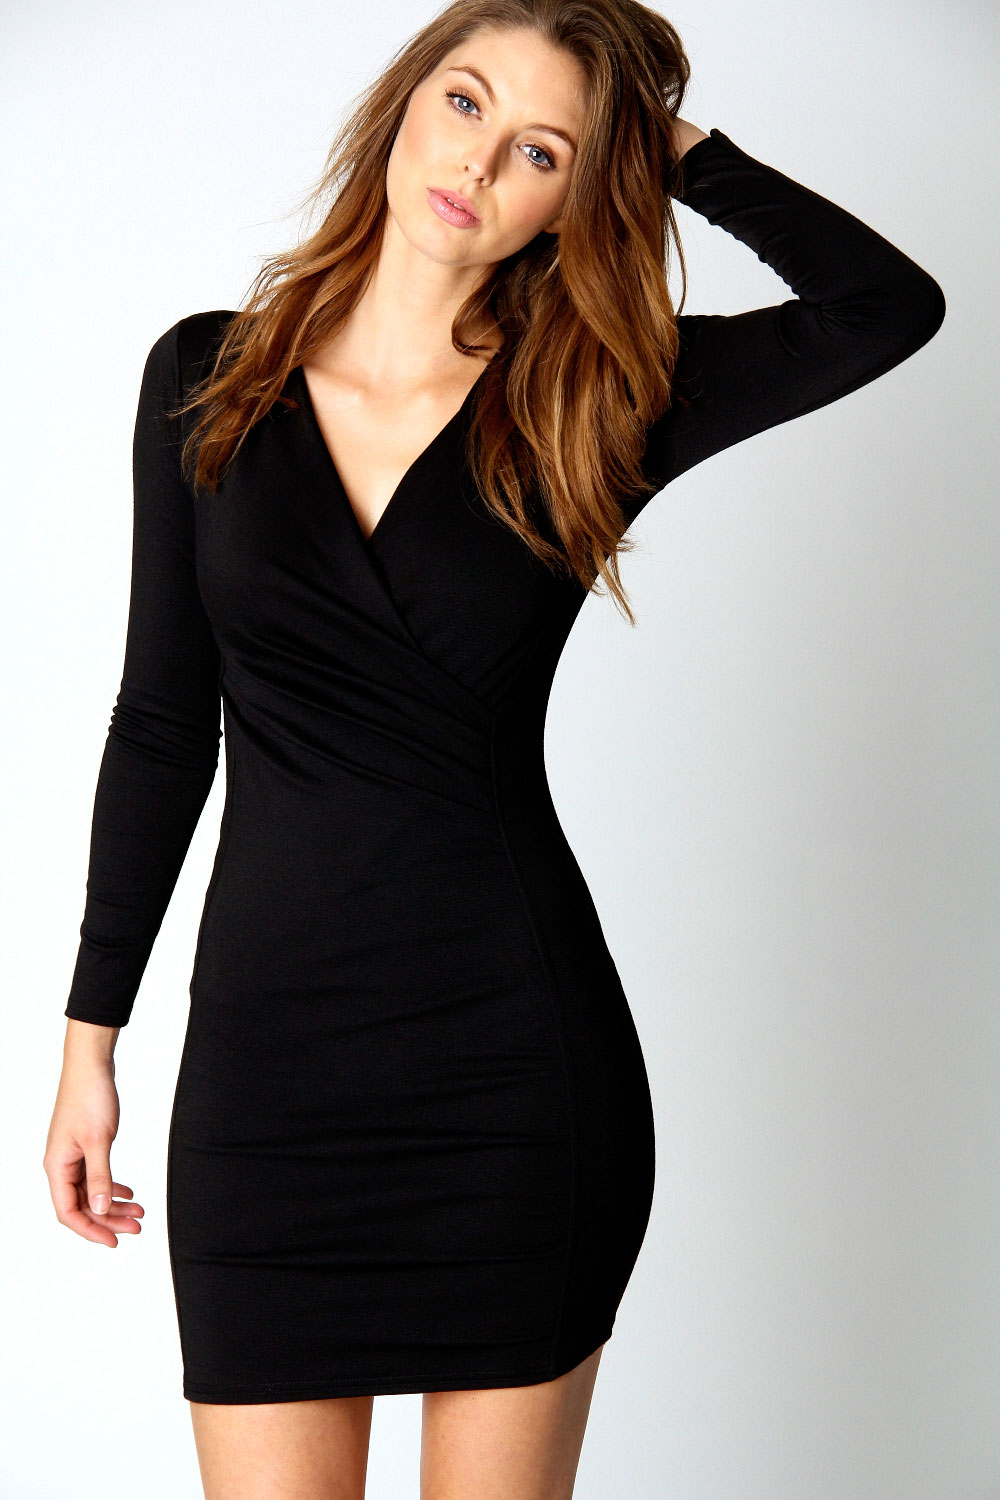 Short Black Long Sleeve Dress